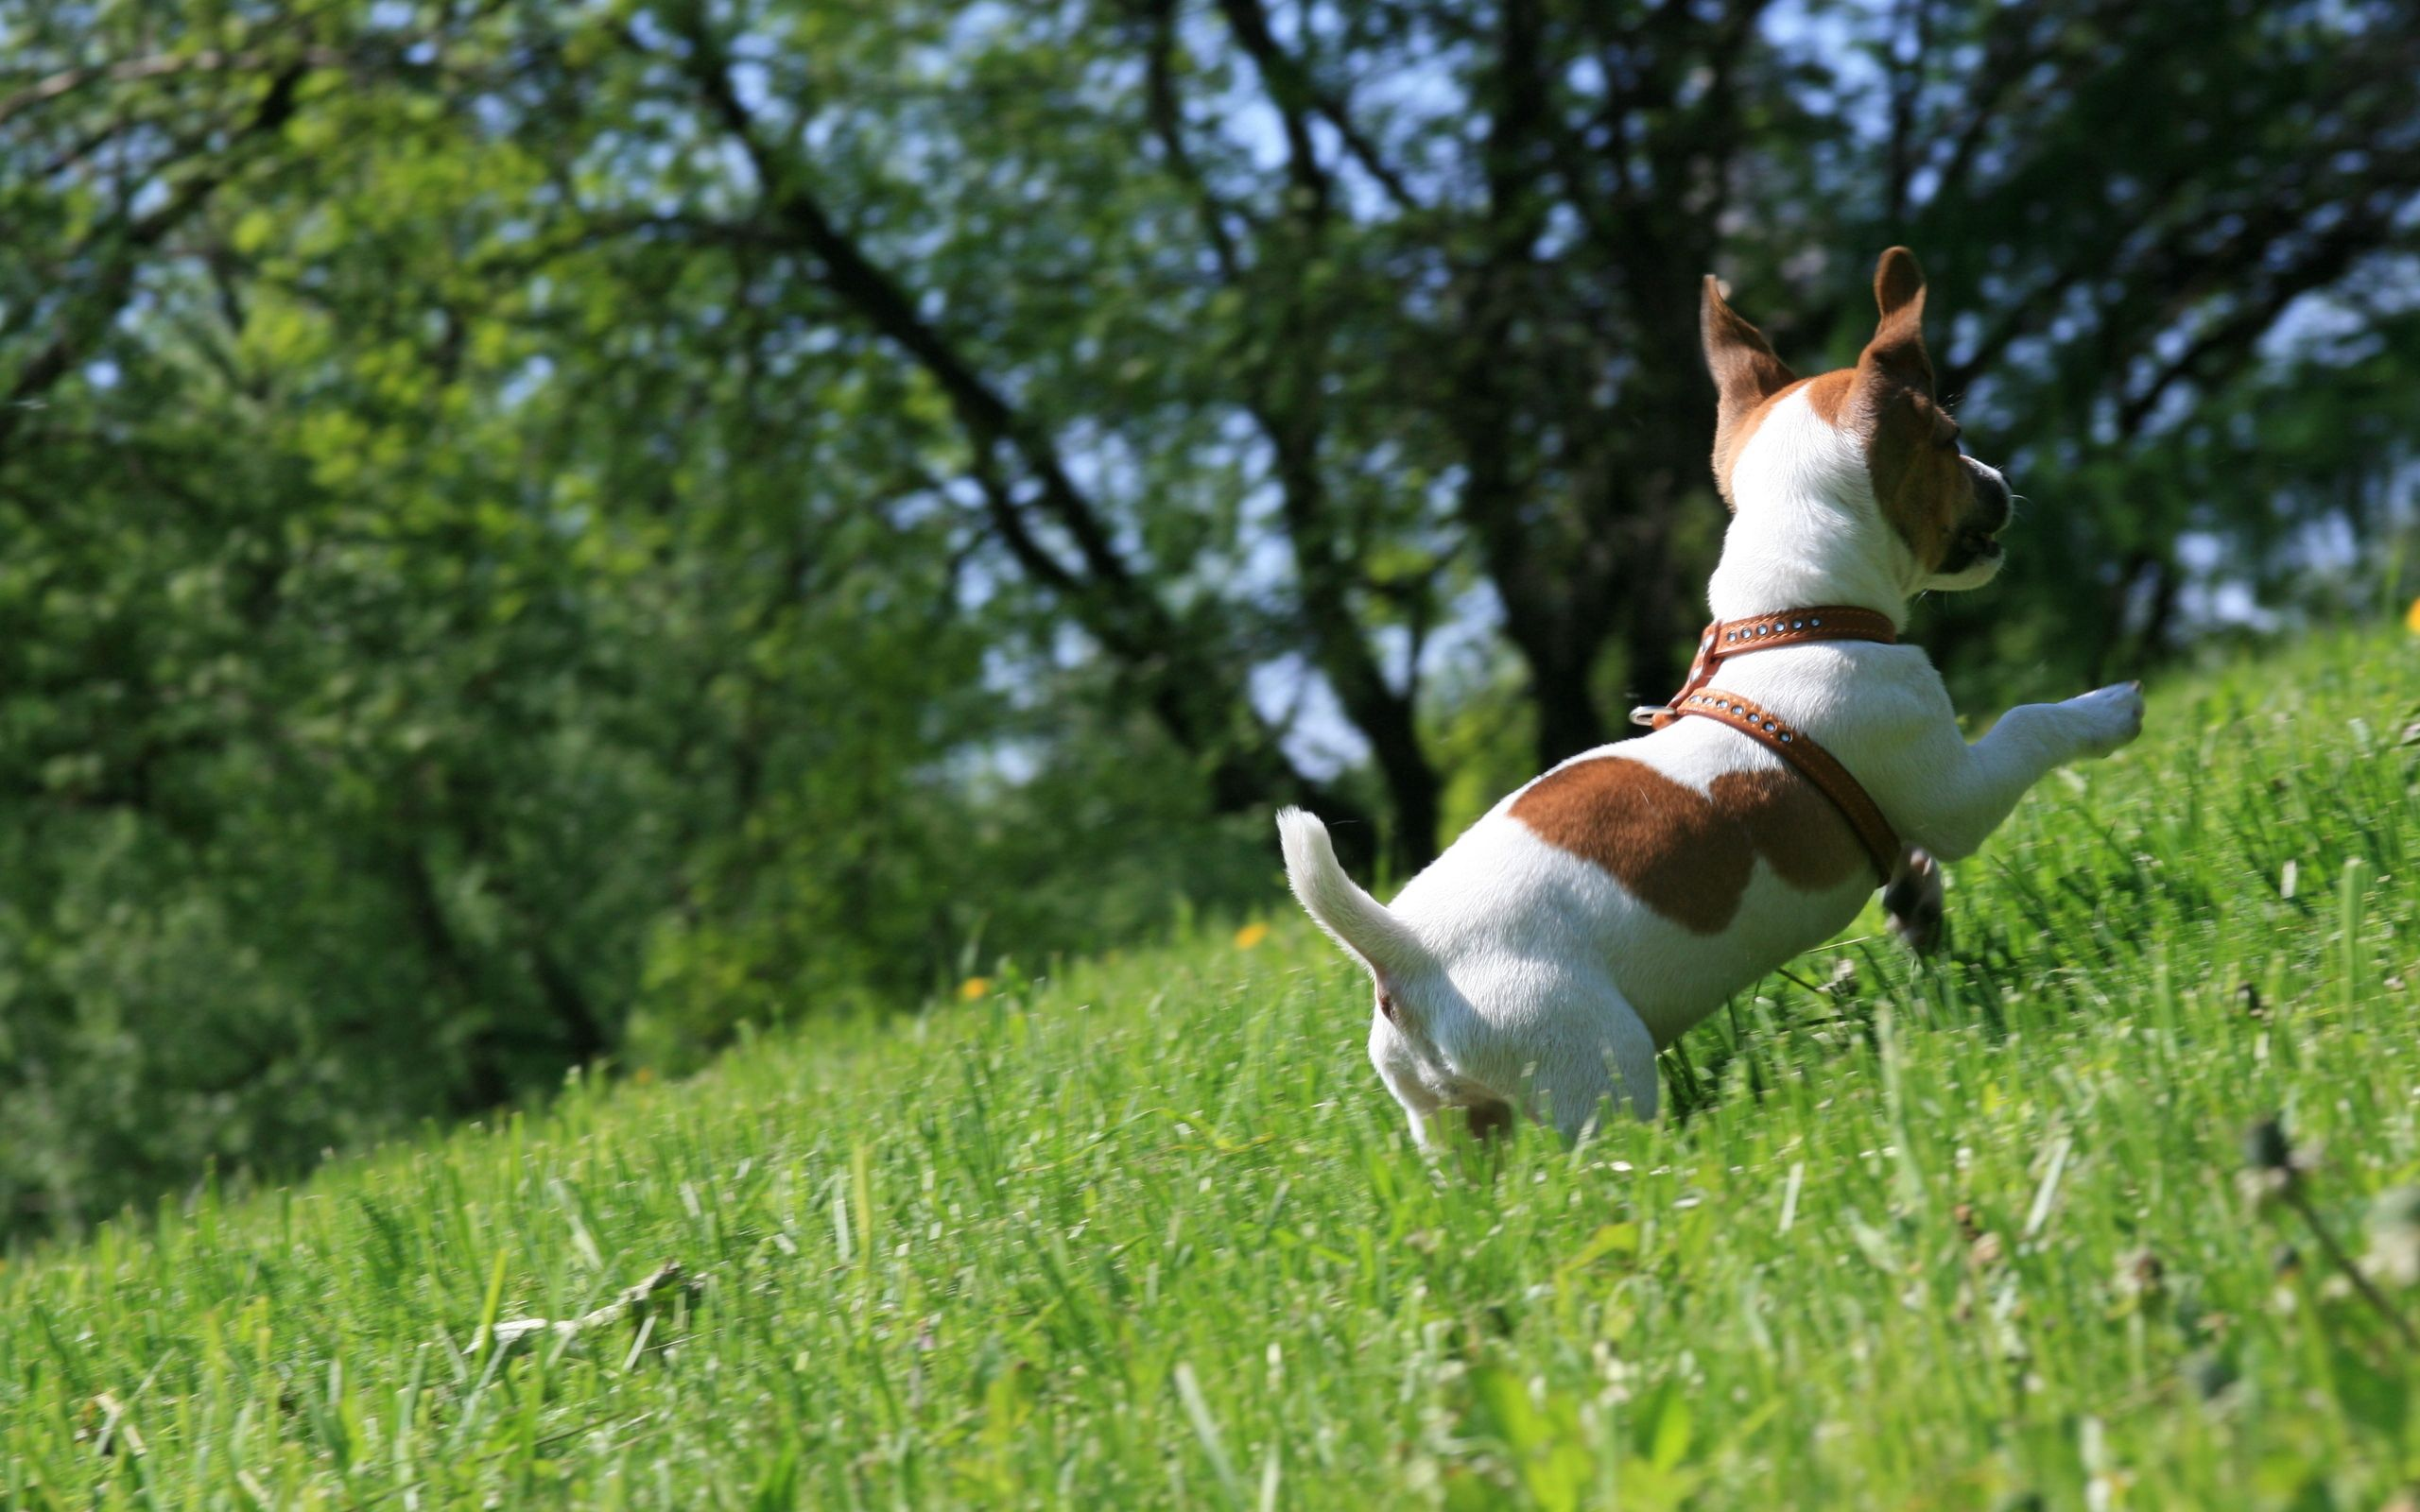 120638 download wallpaper Animals, Dog, Grass, Puppy, Play, Bounce, Jump screensavers and pictures for free